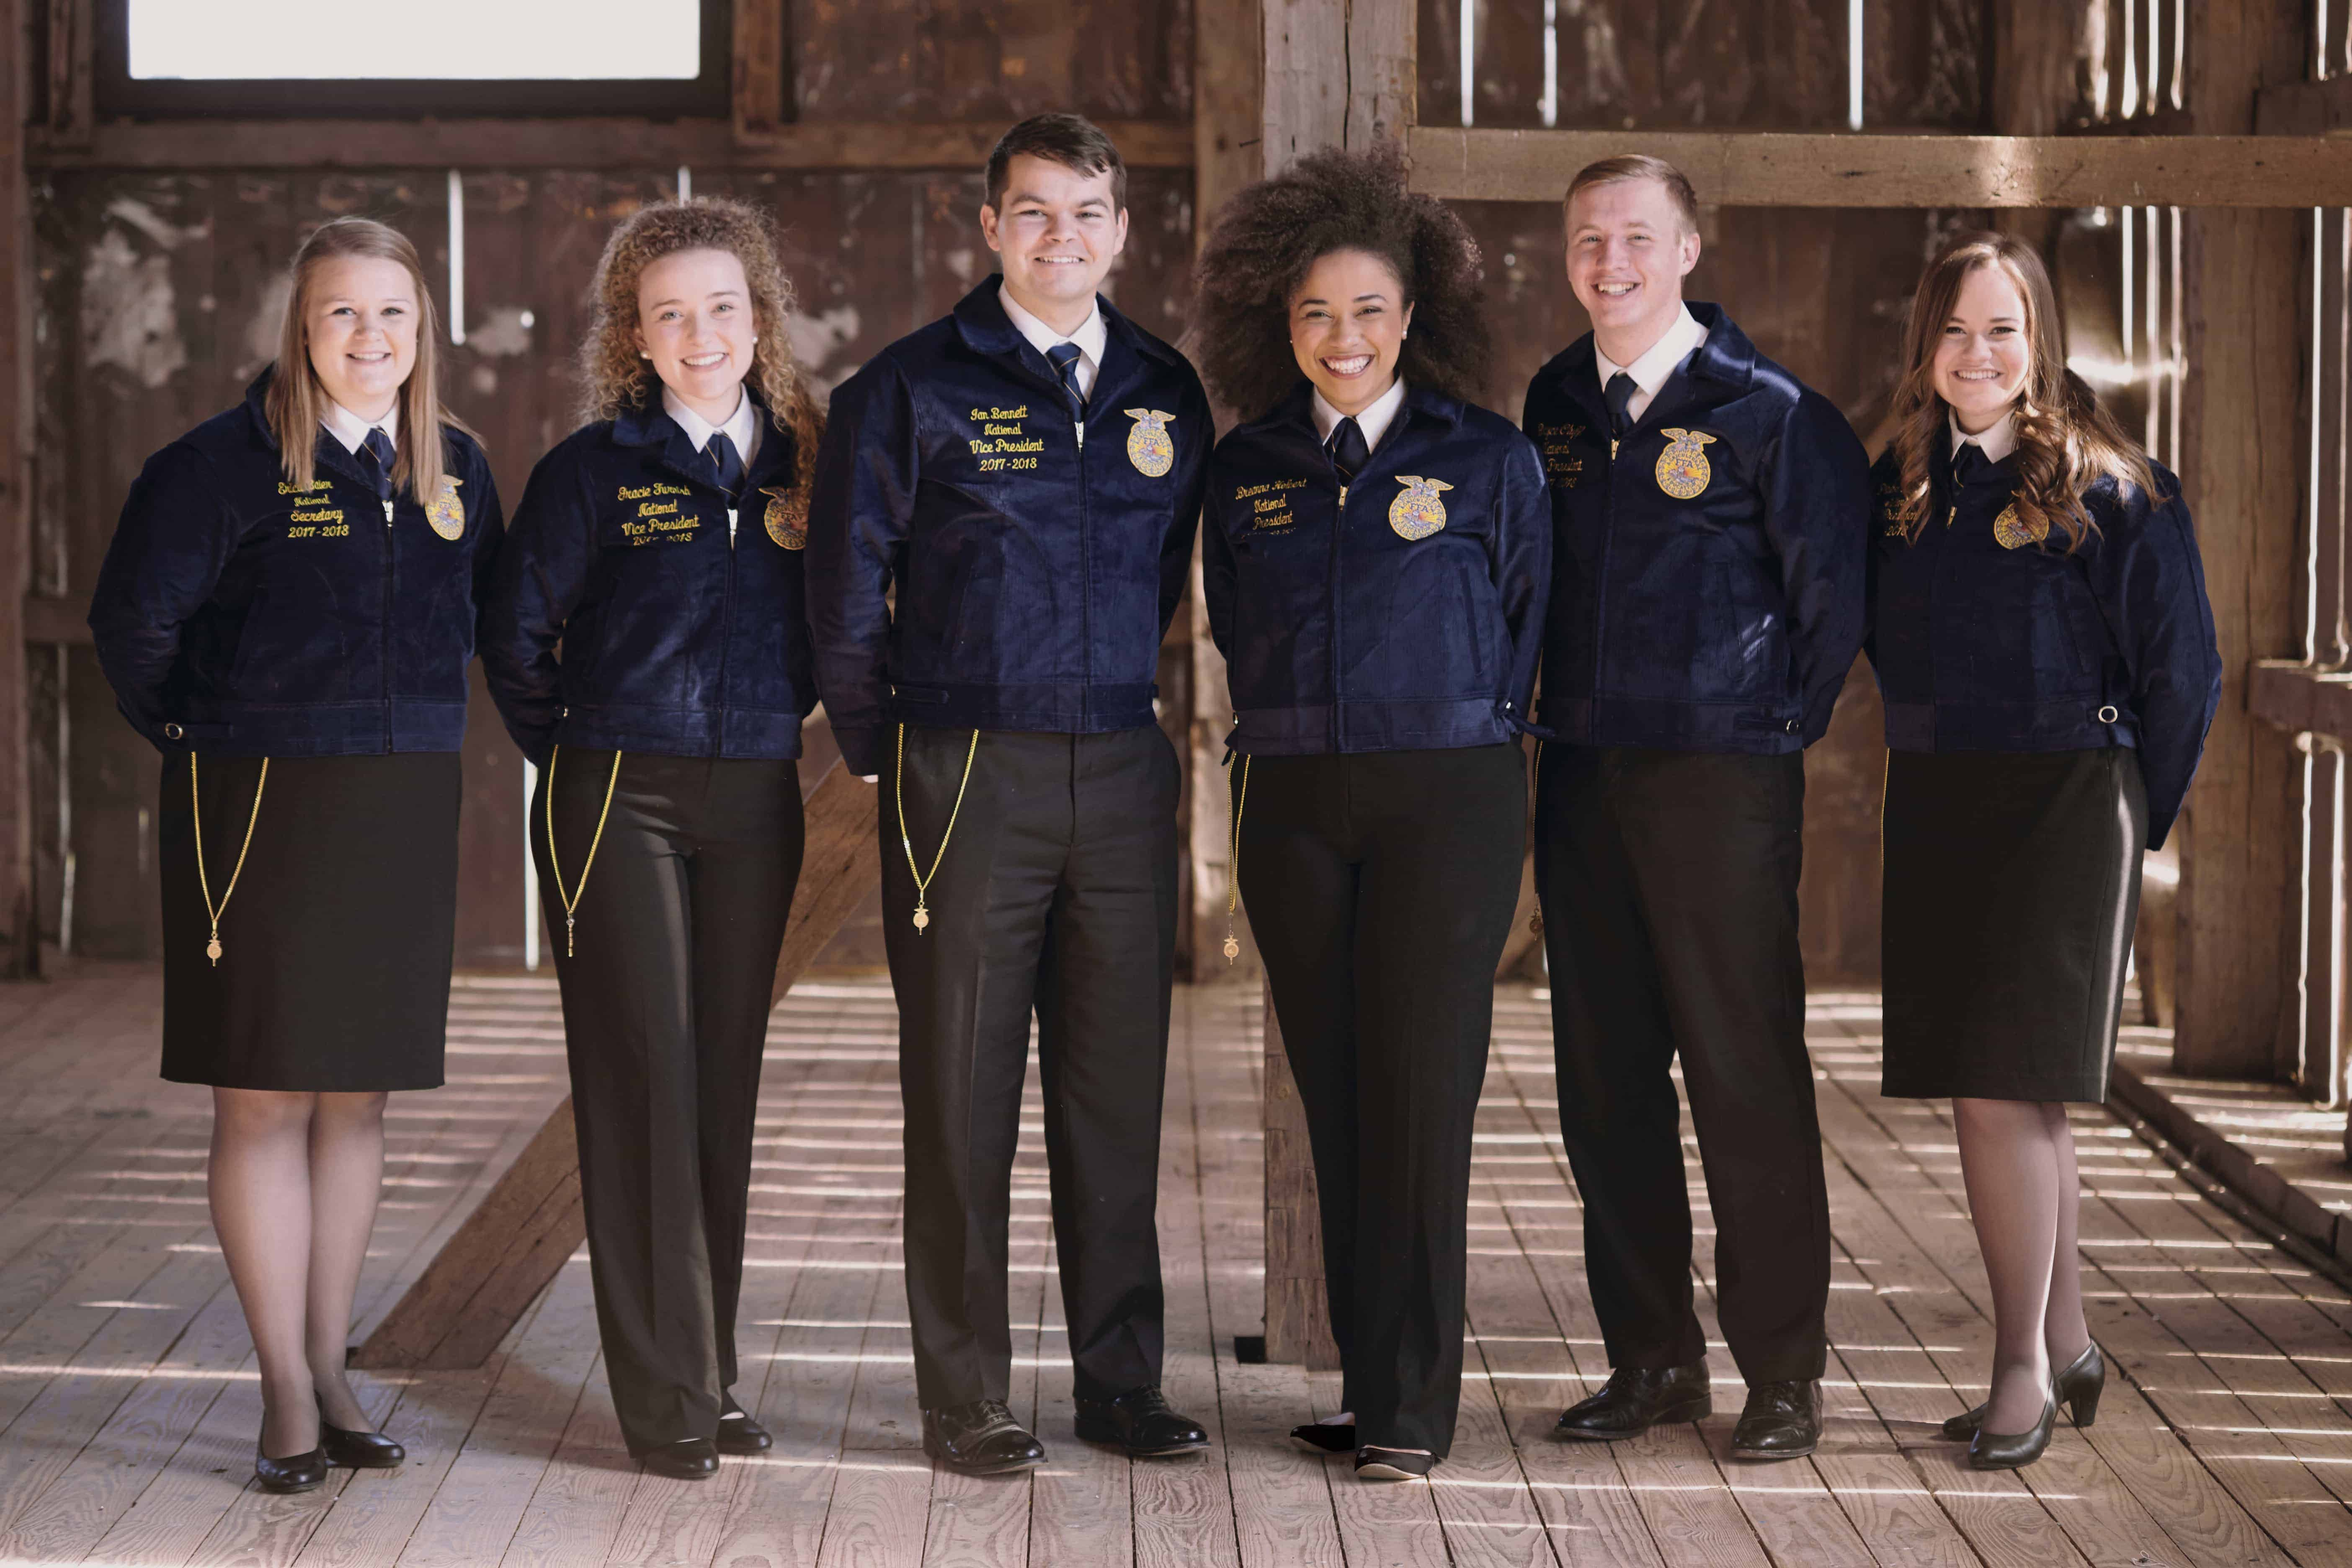 National Officers Reflect on Their Year of Service